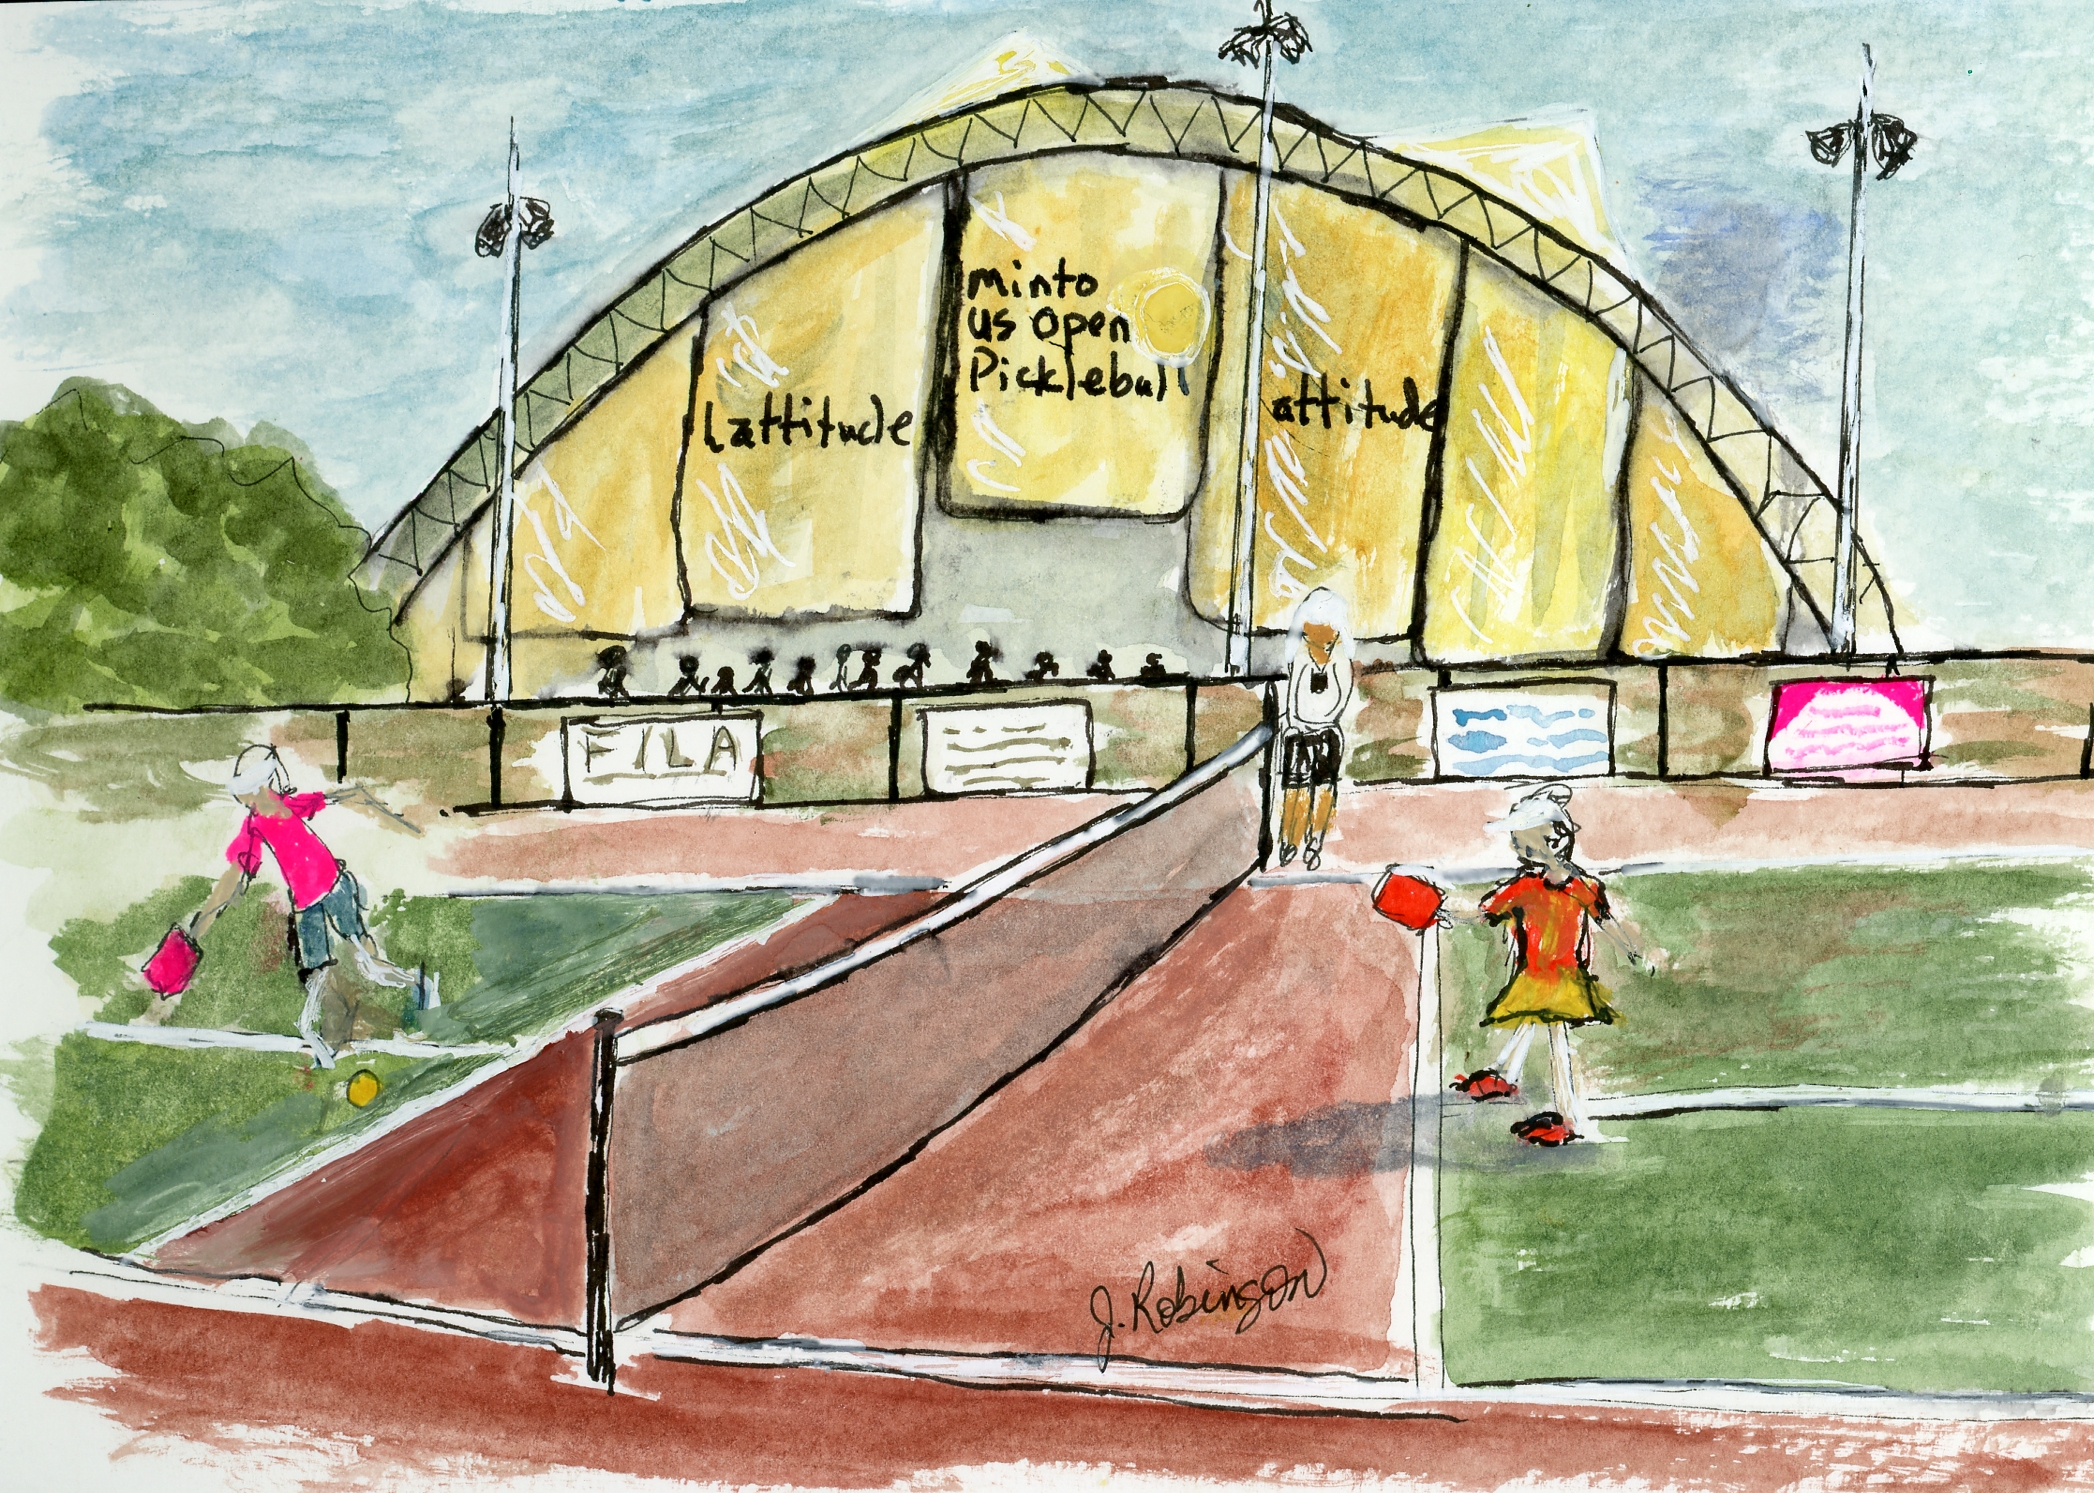 Urban Sketch - Watching a game at the Pickleball Capitol of the World